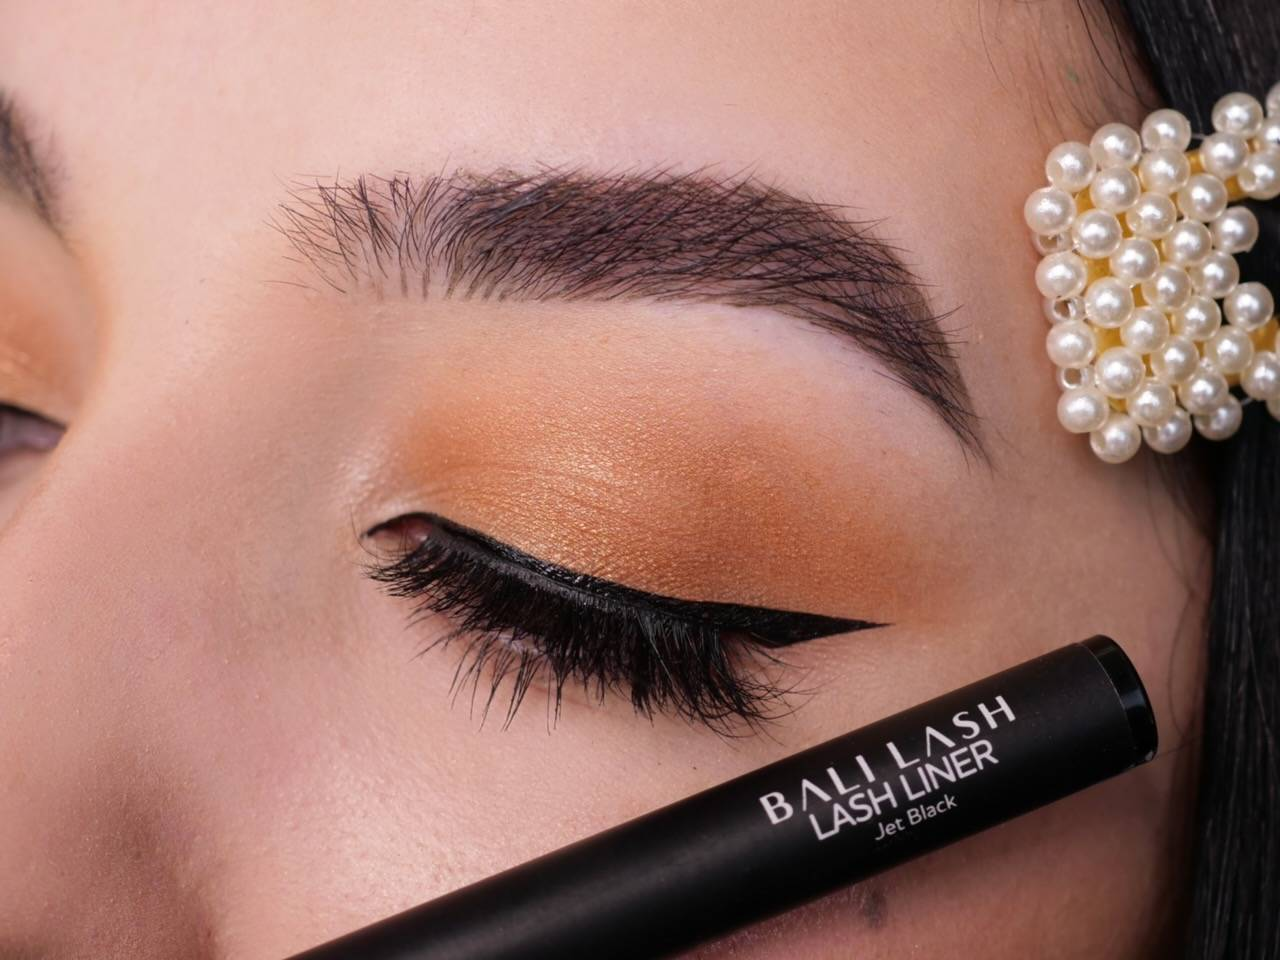 ashley kayla makeup bali lash adhesive eyeliner